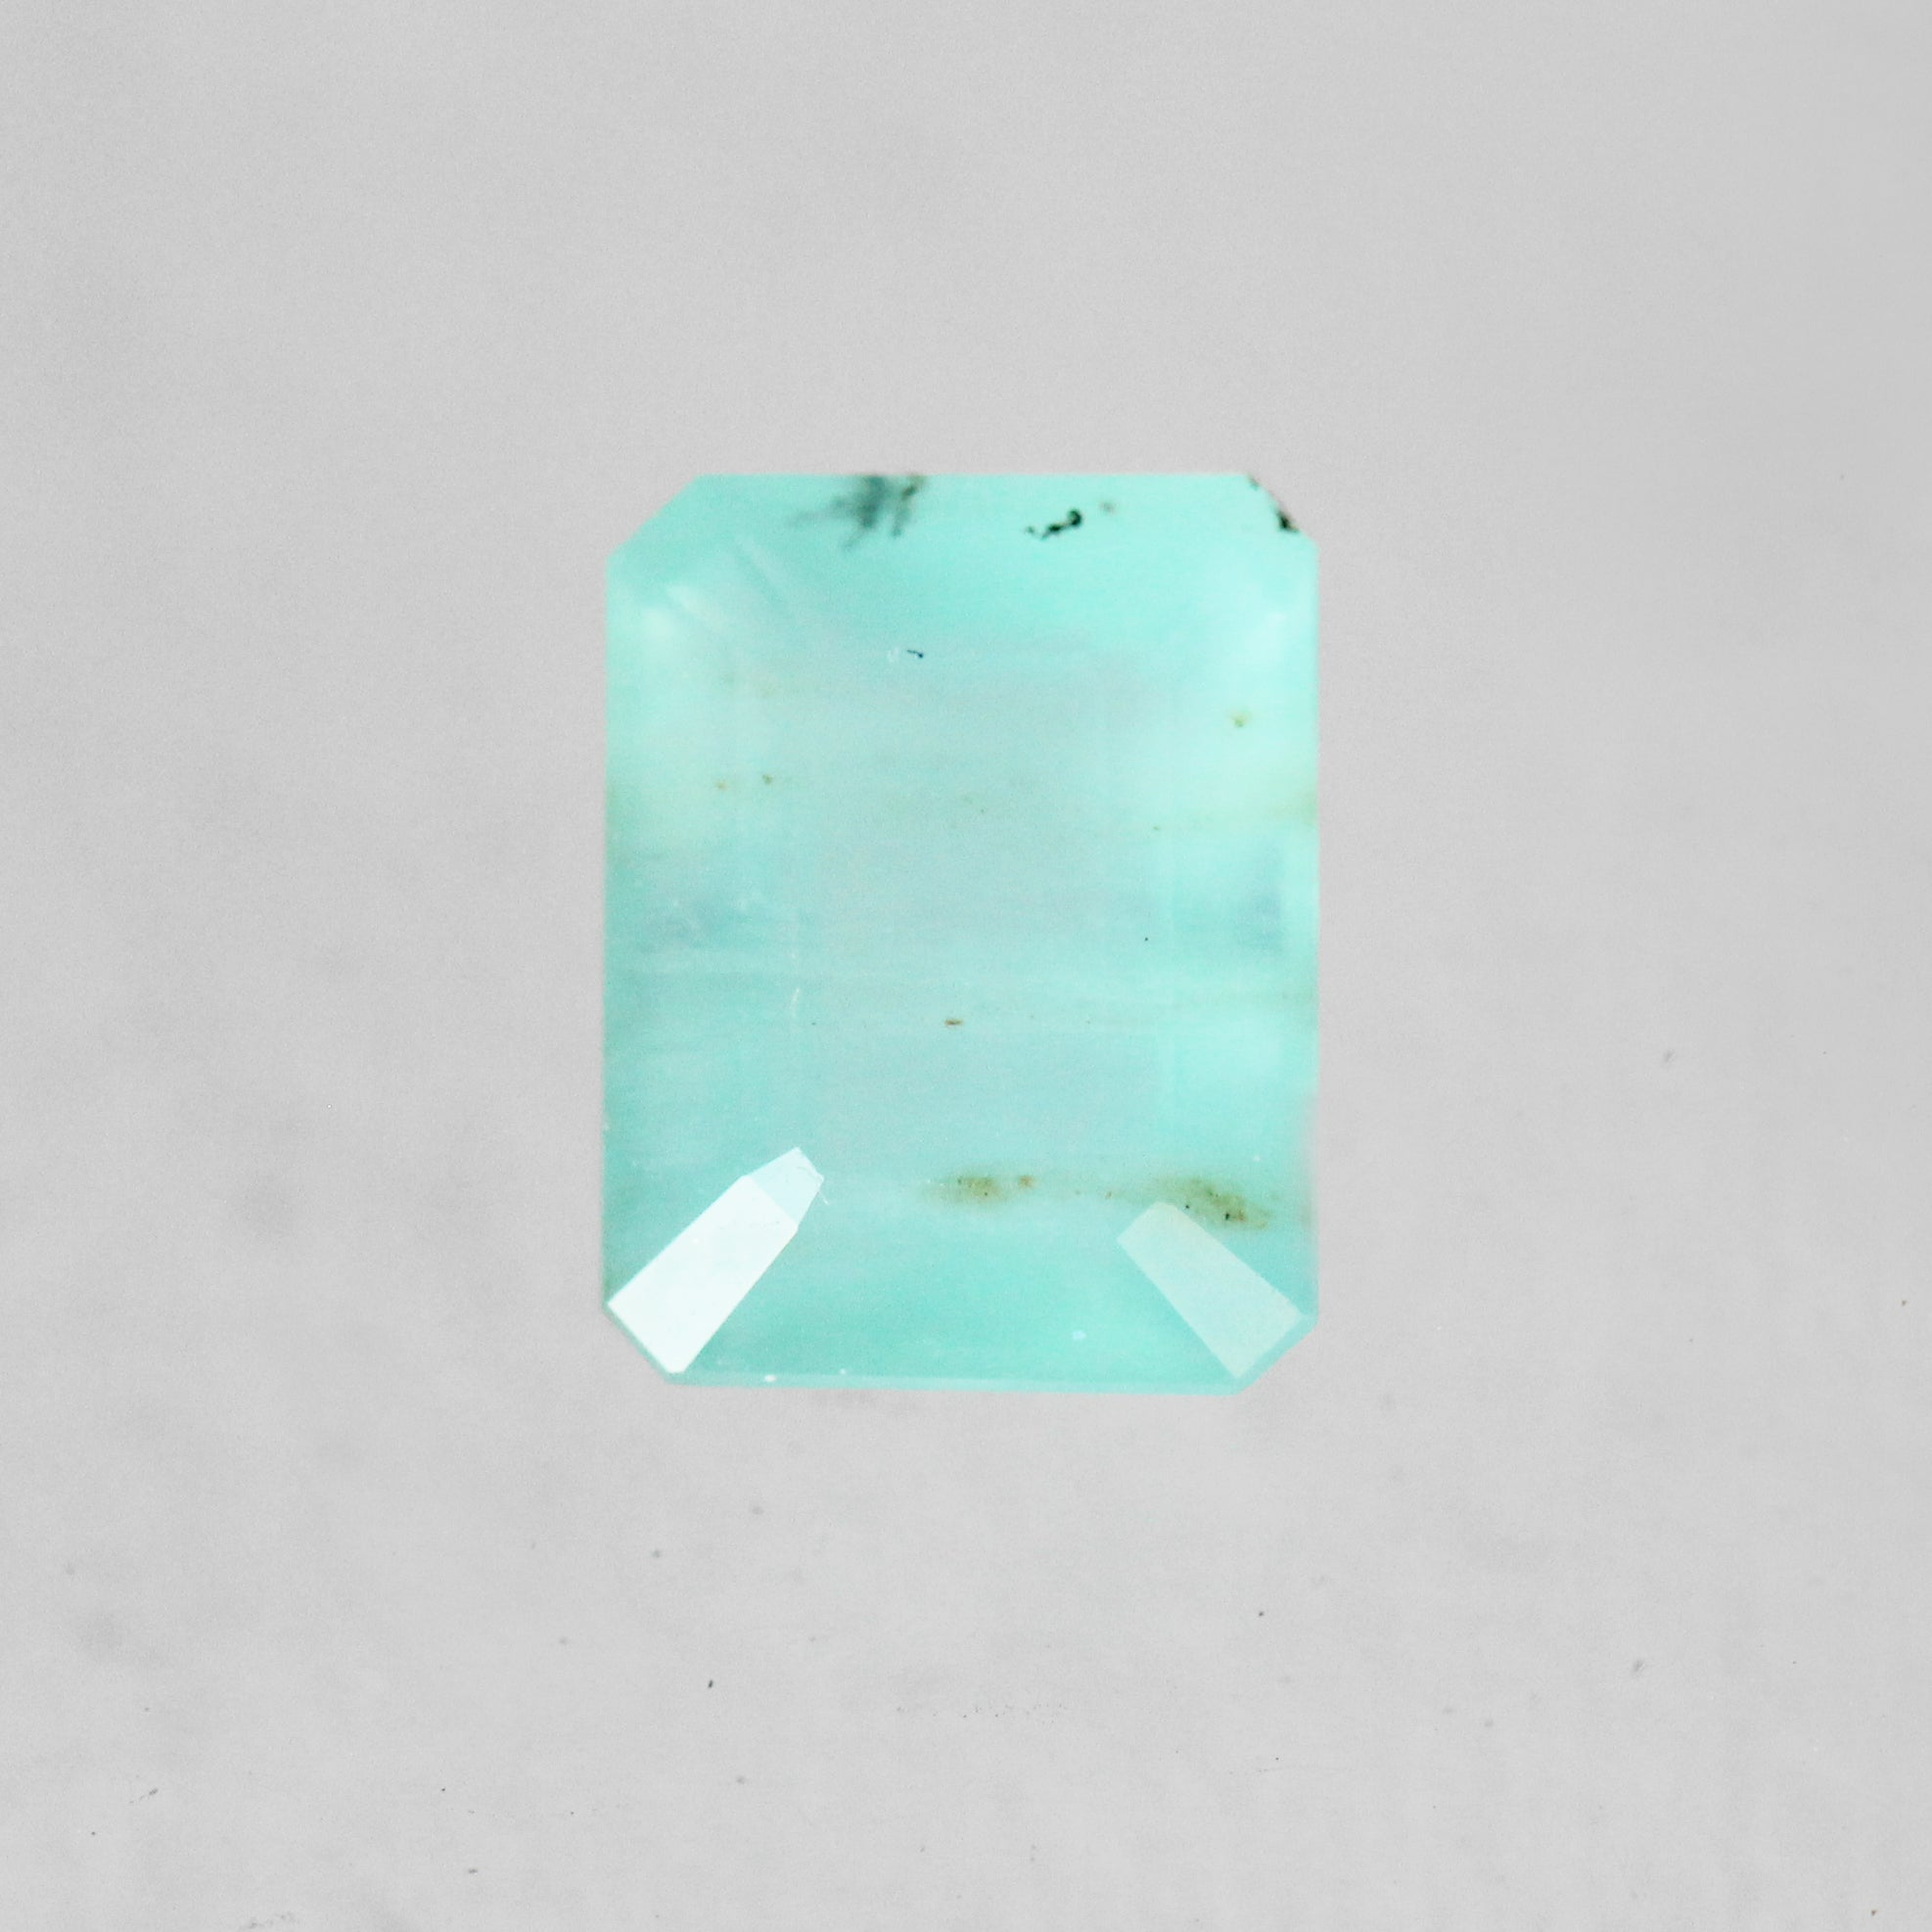 1.51 Carat Emerald Opal- Inventory Code EBB151 - Celestial Diamonds ® by Midwinter Co.